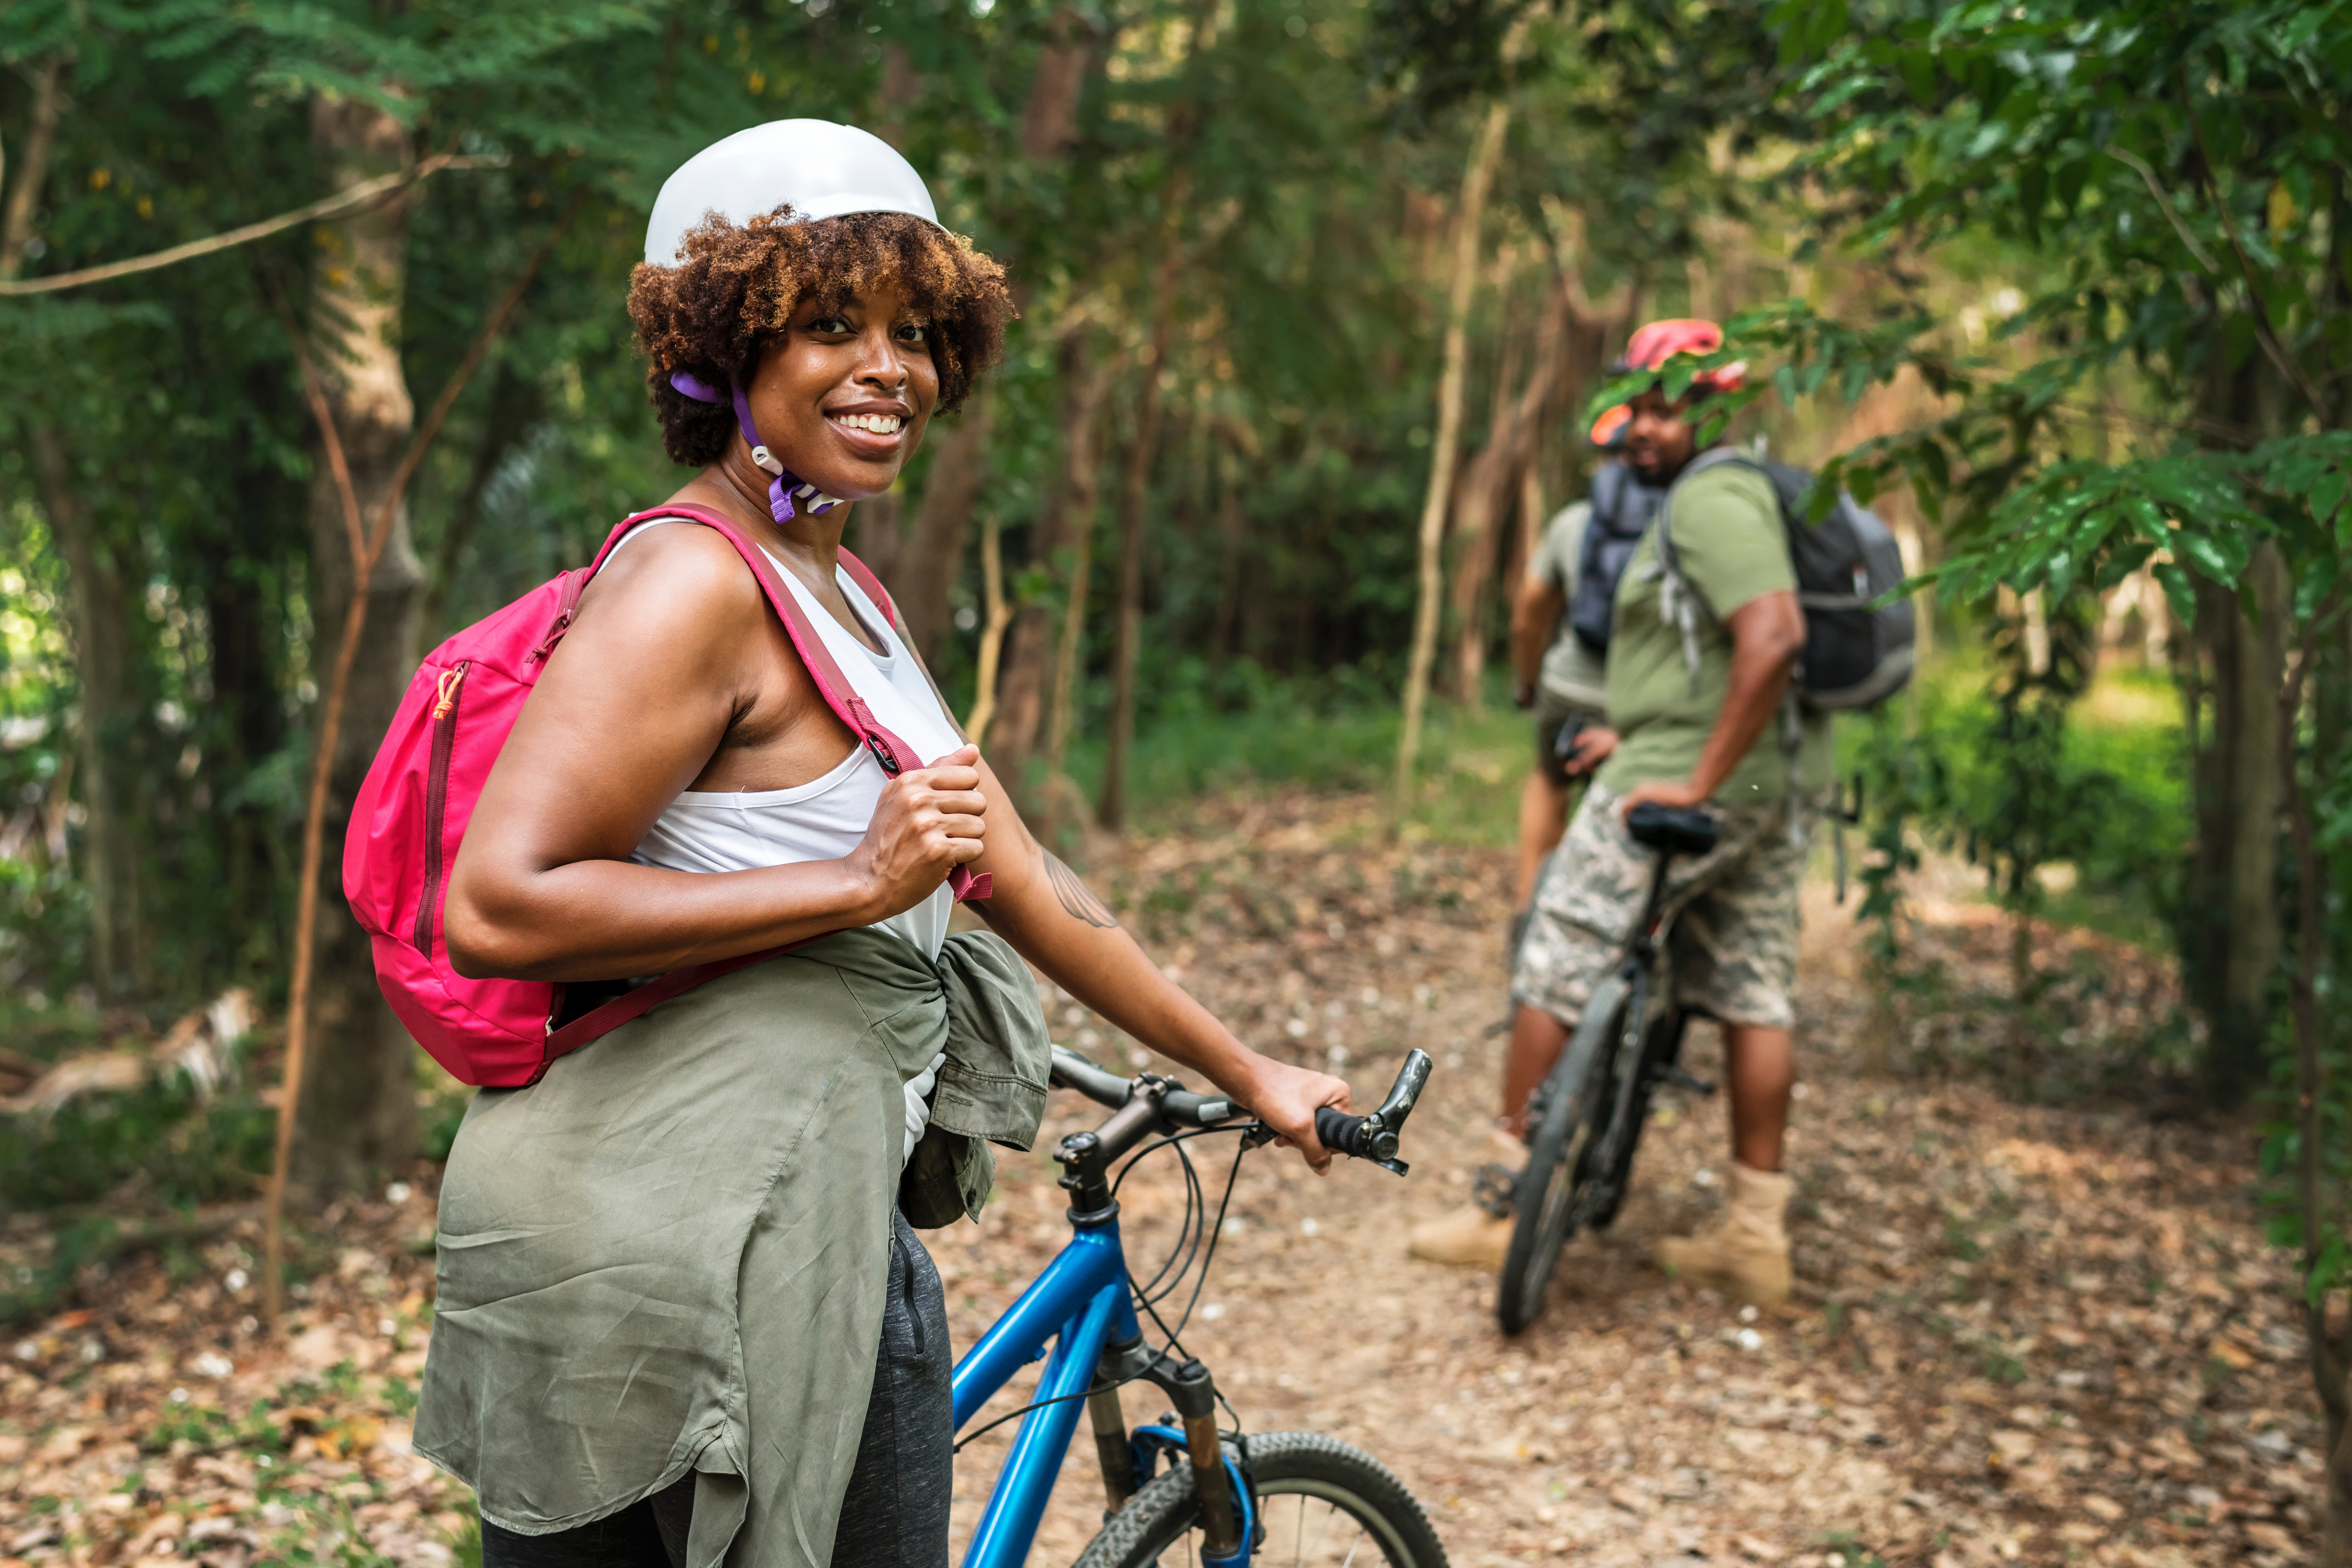 Adult African American female riding bike on trail